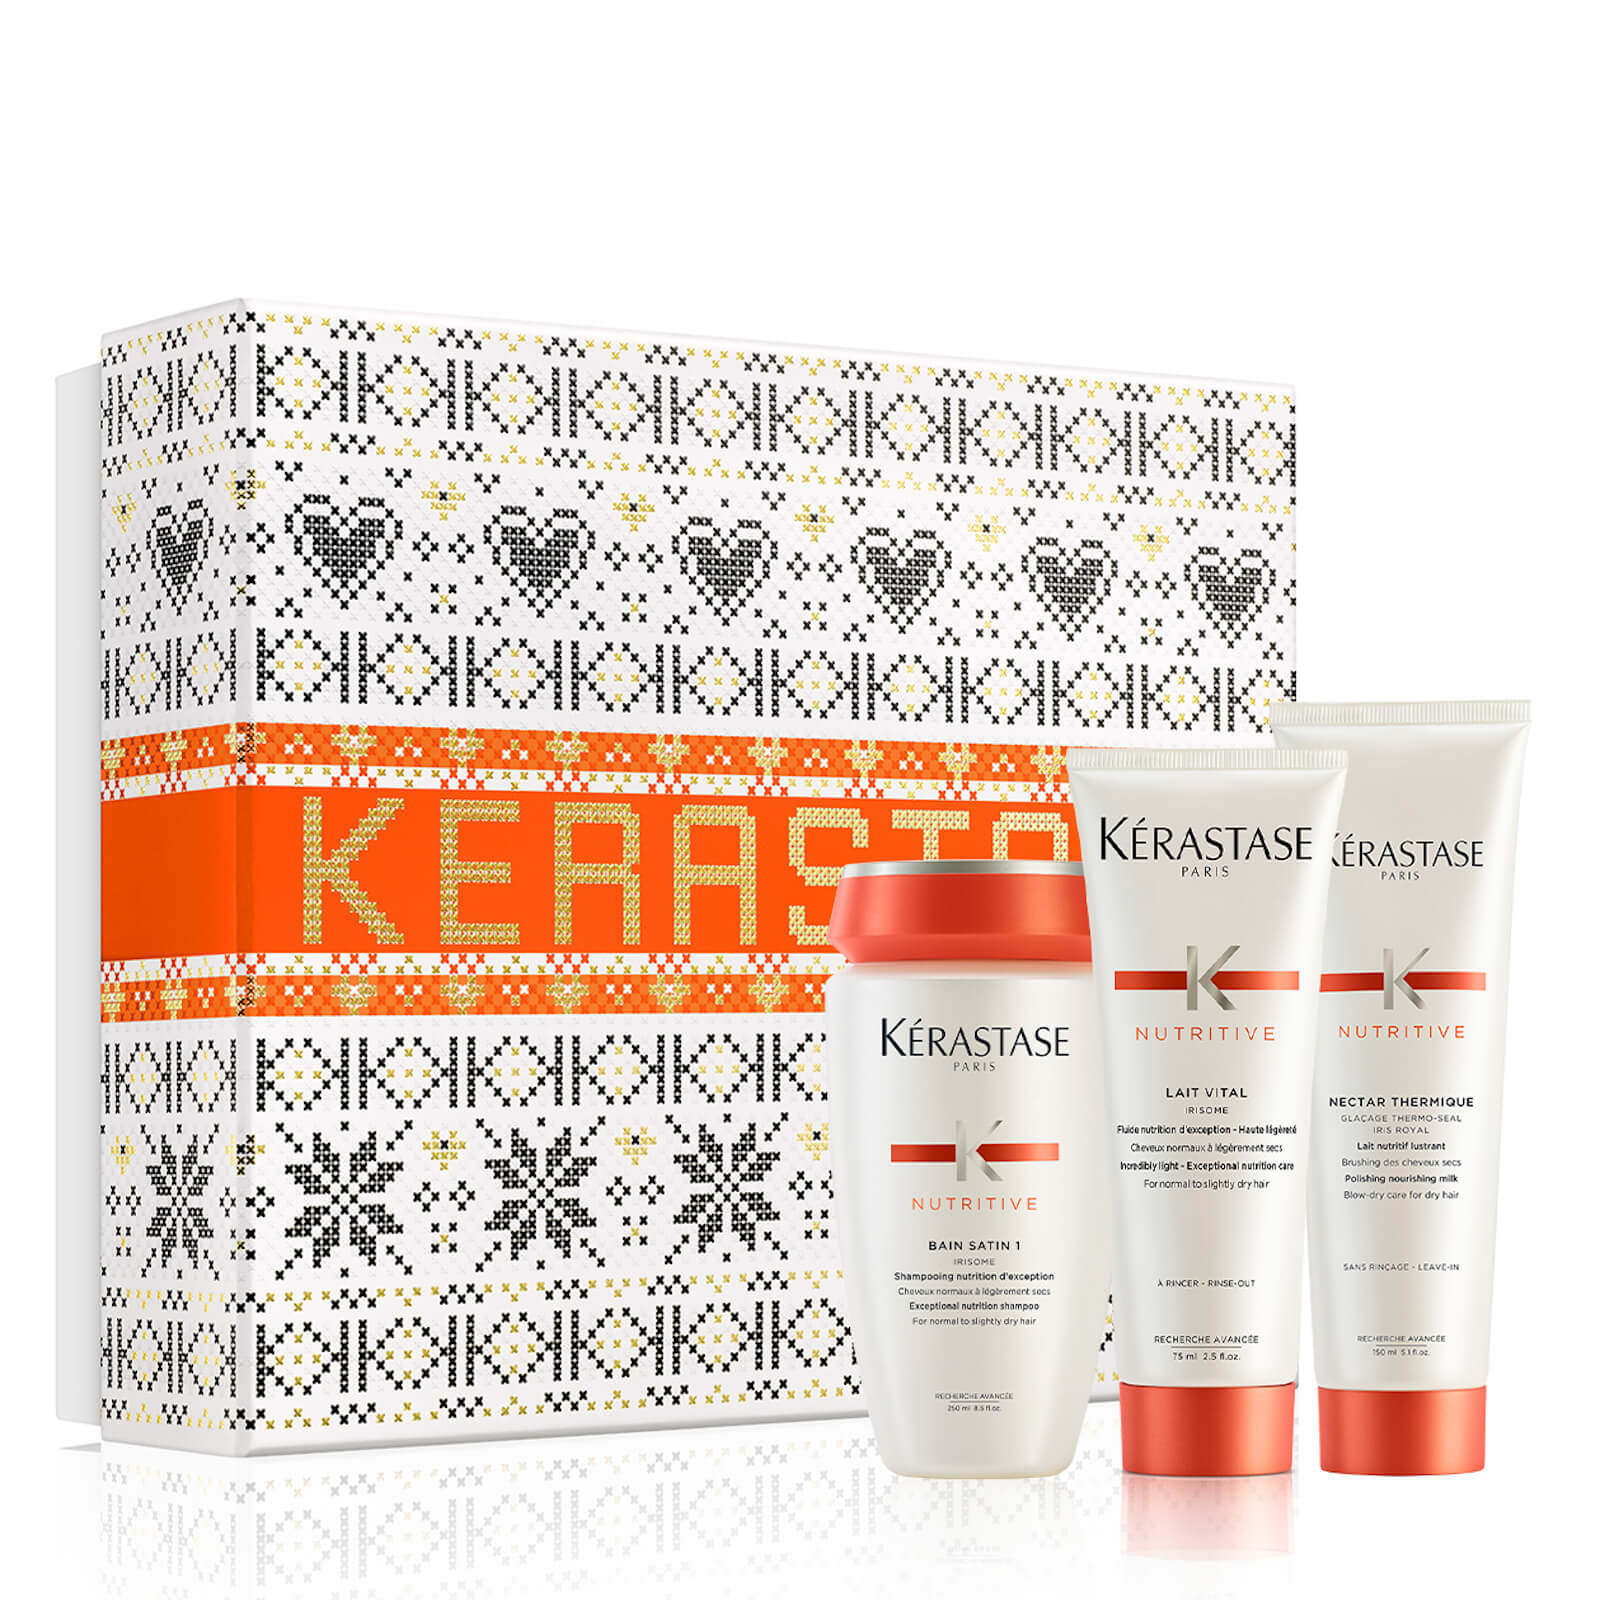 Kerastase Holiday Set (20% off!)